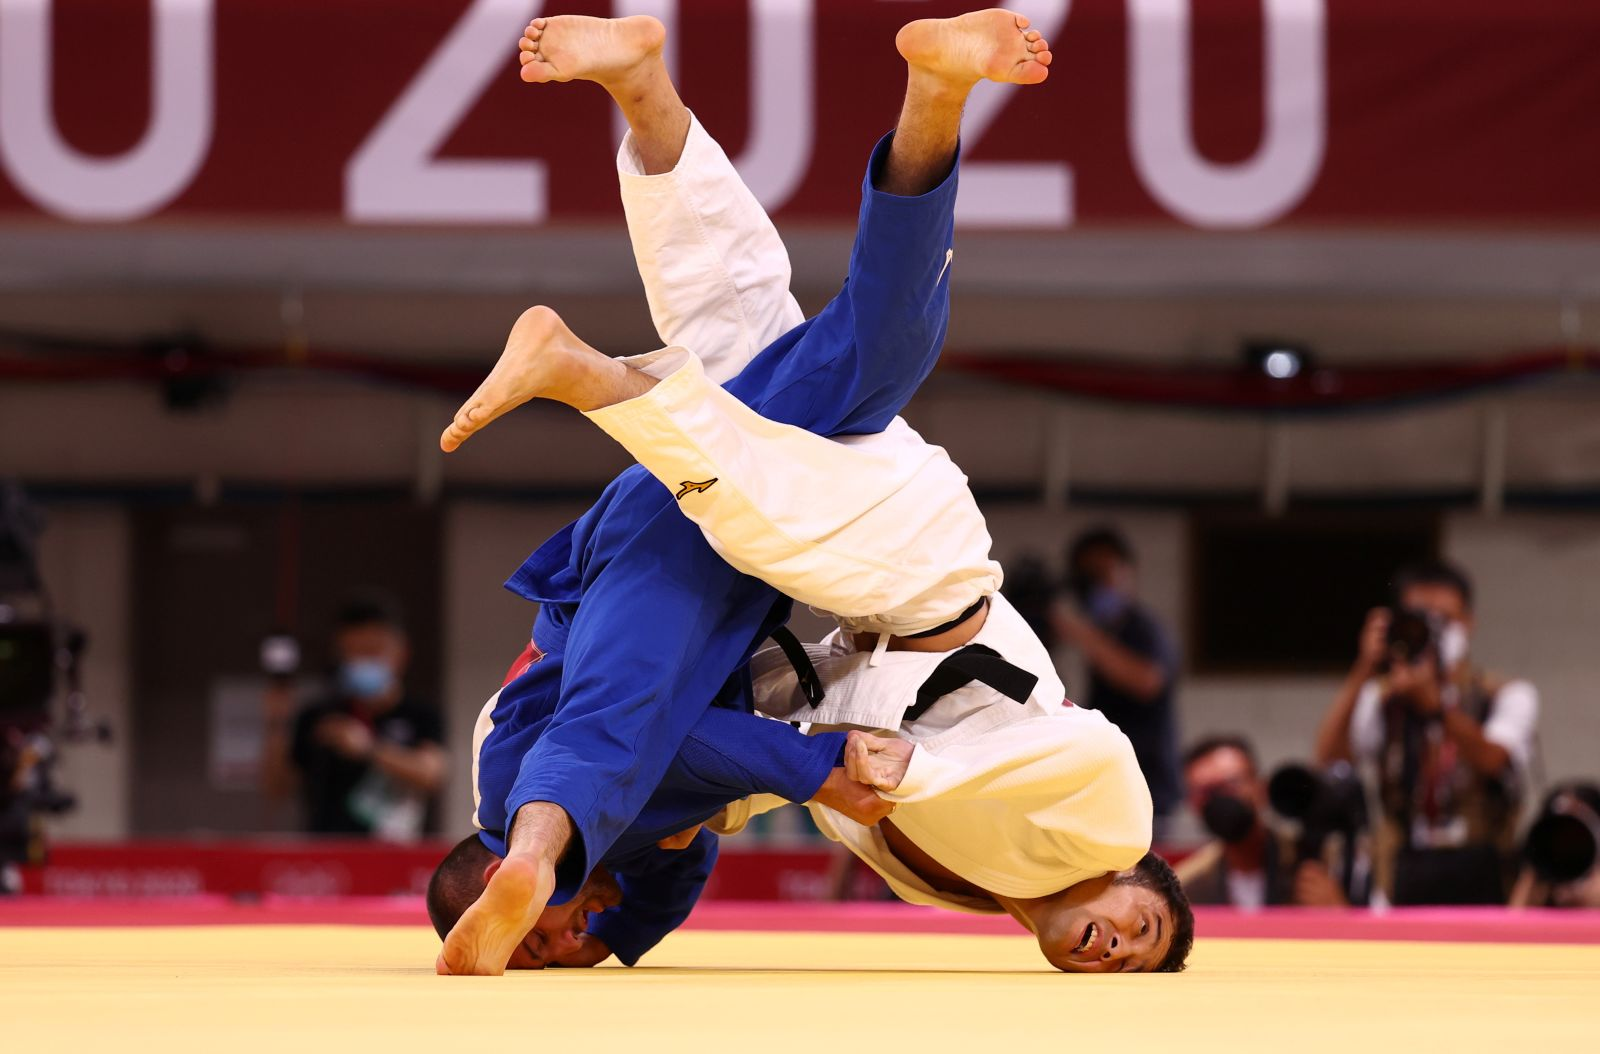 Japan's Naohisa Takato, in blue, competes against Georgia's Lukhumi Chkhvimiani in the men's 60kg judo quarterfinal on July 24. Takato went on to win the first gold medal for Japan, beating Yang Yung-wei of Chinese Taipei to clinch the men's 60kg judo title.